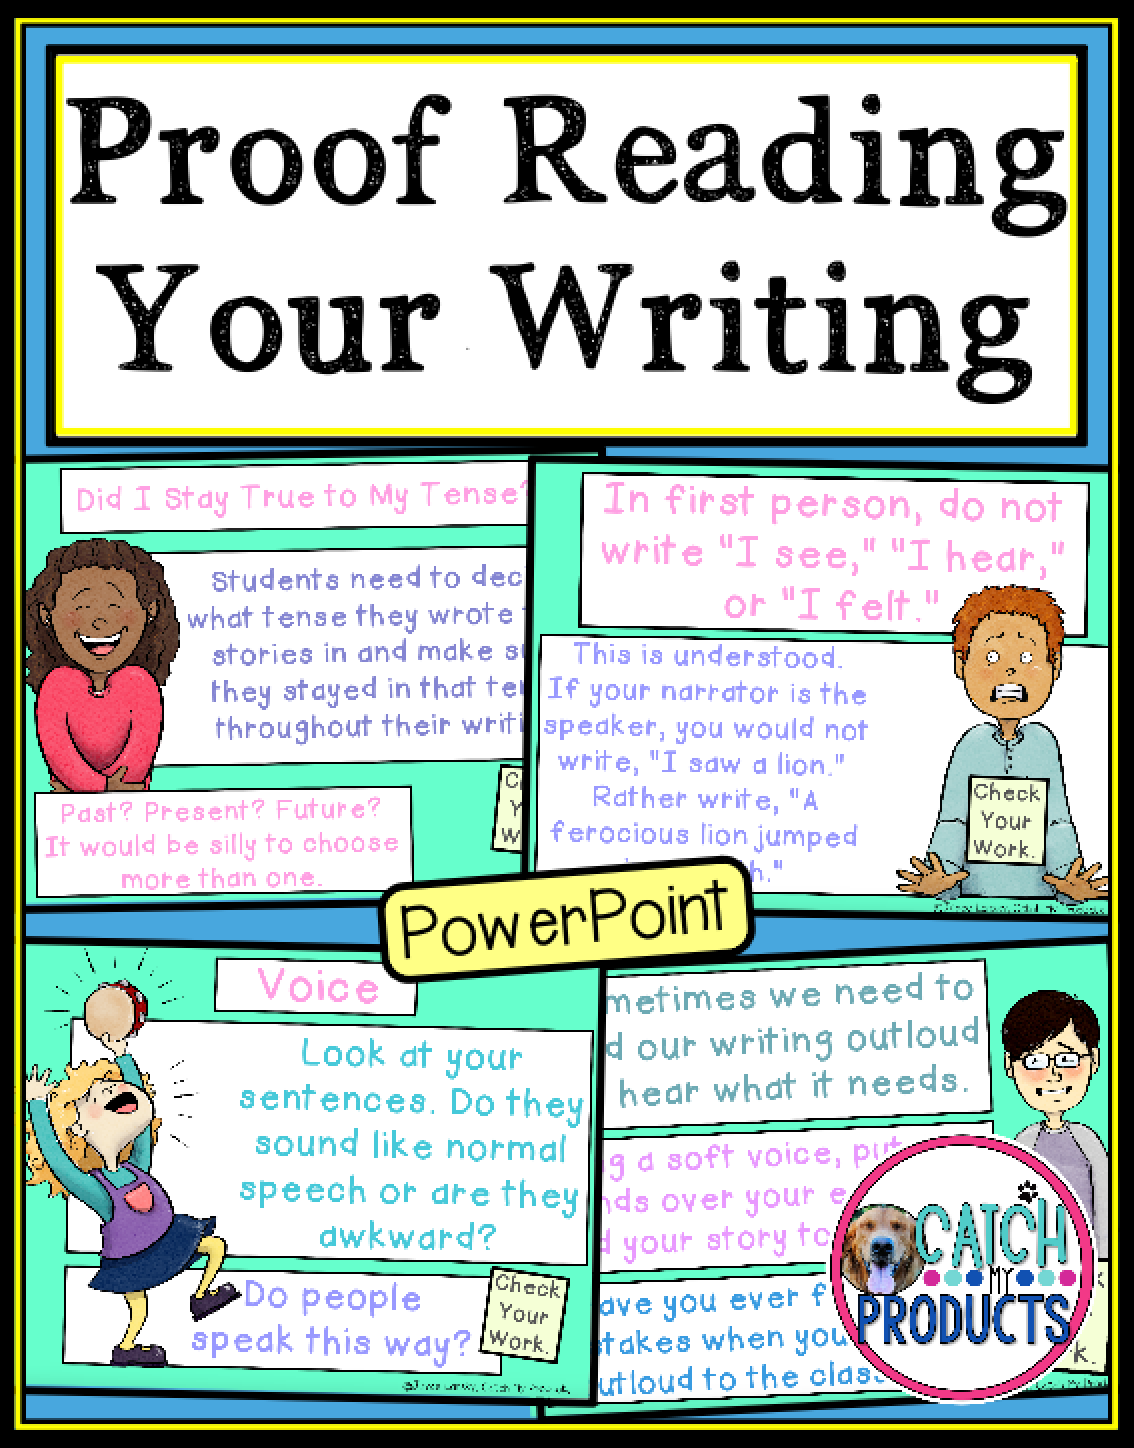 Proofreading And Editing Writing Tips Teaching Writing Elementary Elementary Writing Writing Instruction [ 1448 x 1134 Pixel ]